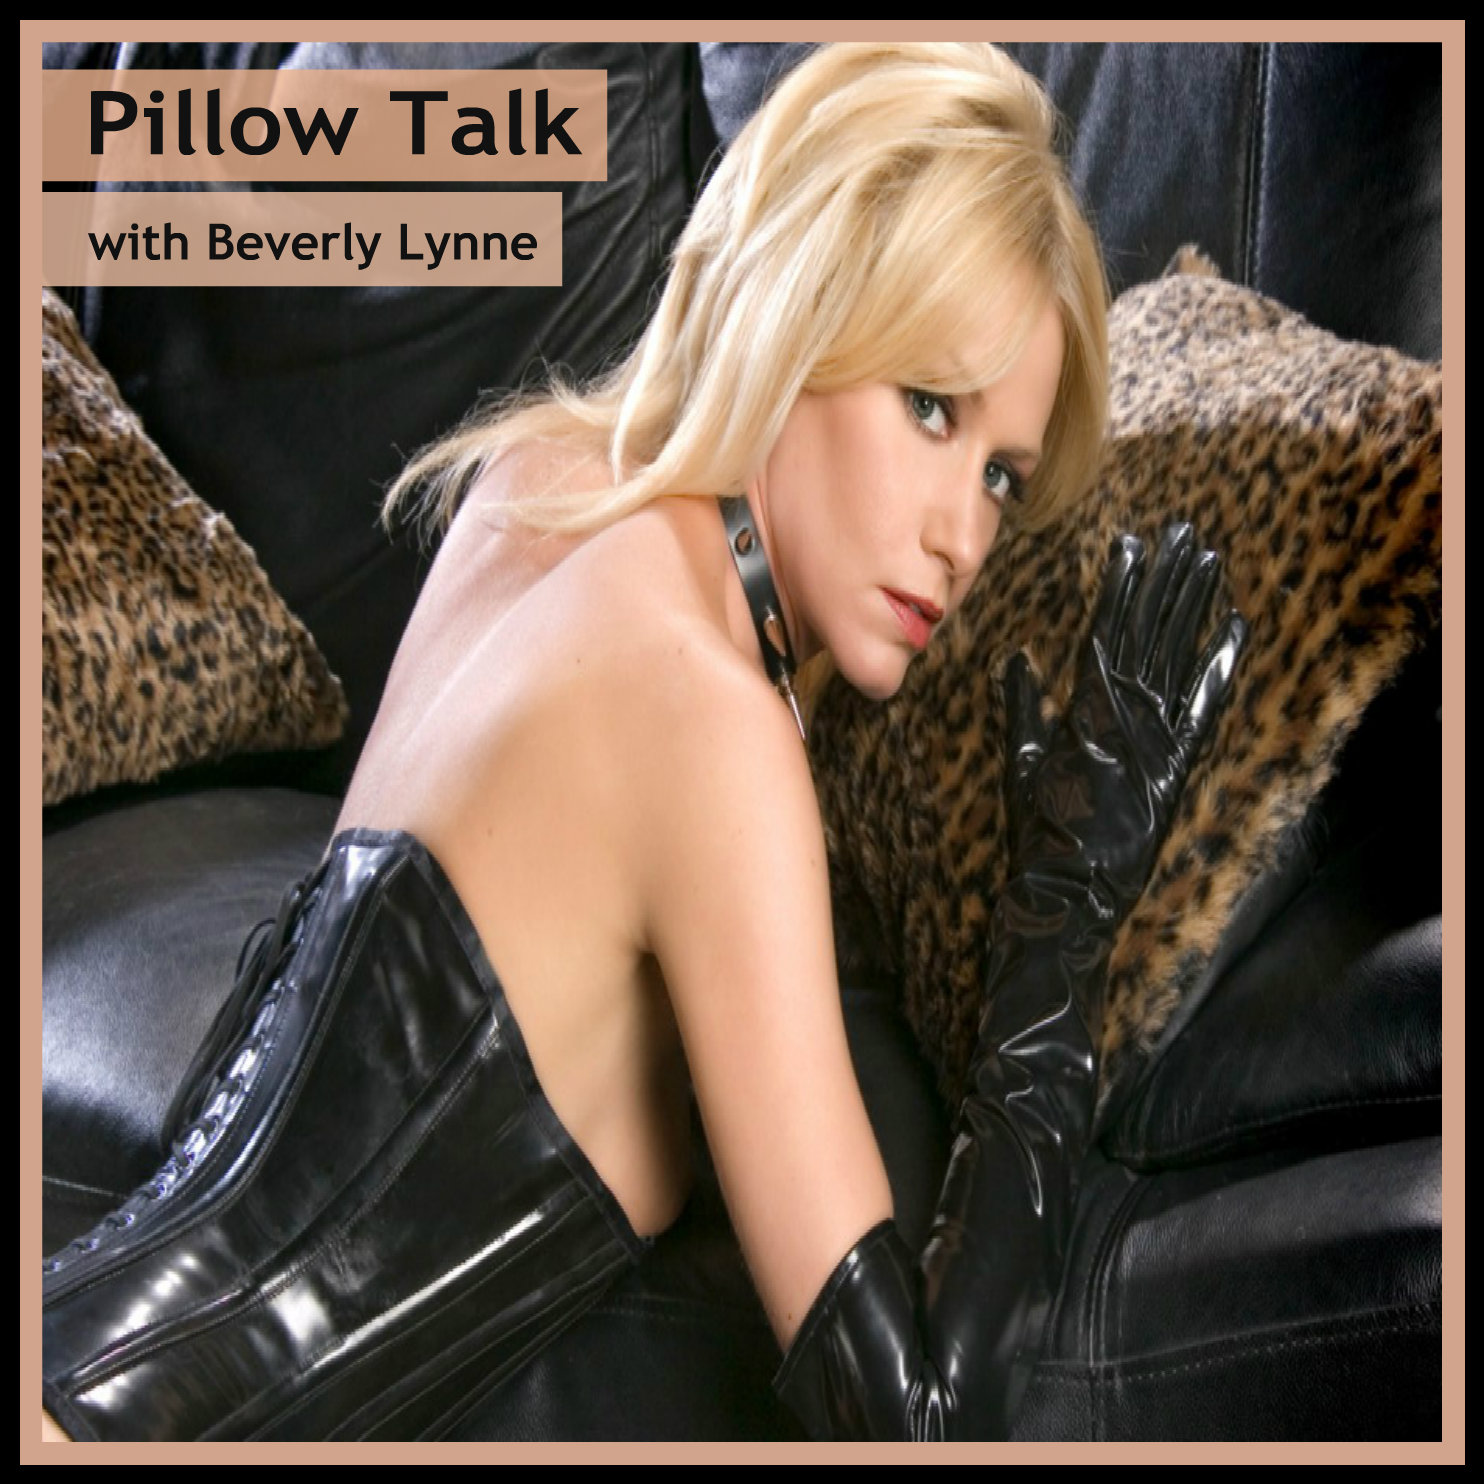 Pillow Talk | Sexuality | Comedy | Sex Education | Fetish